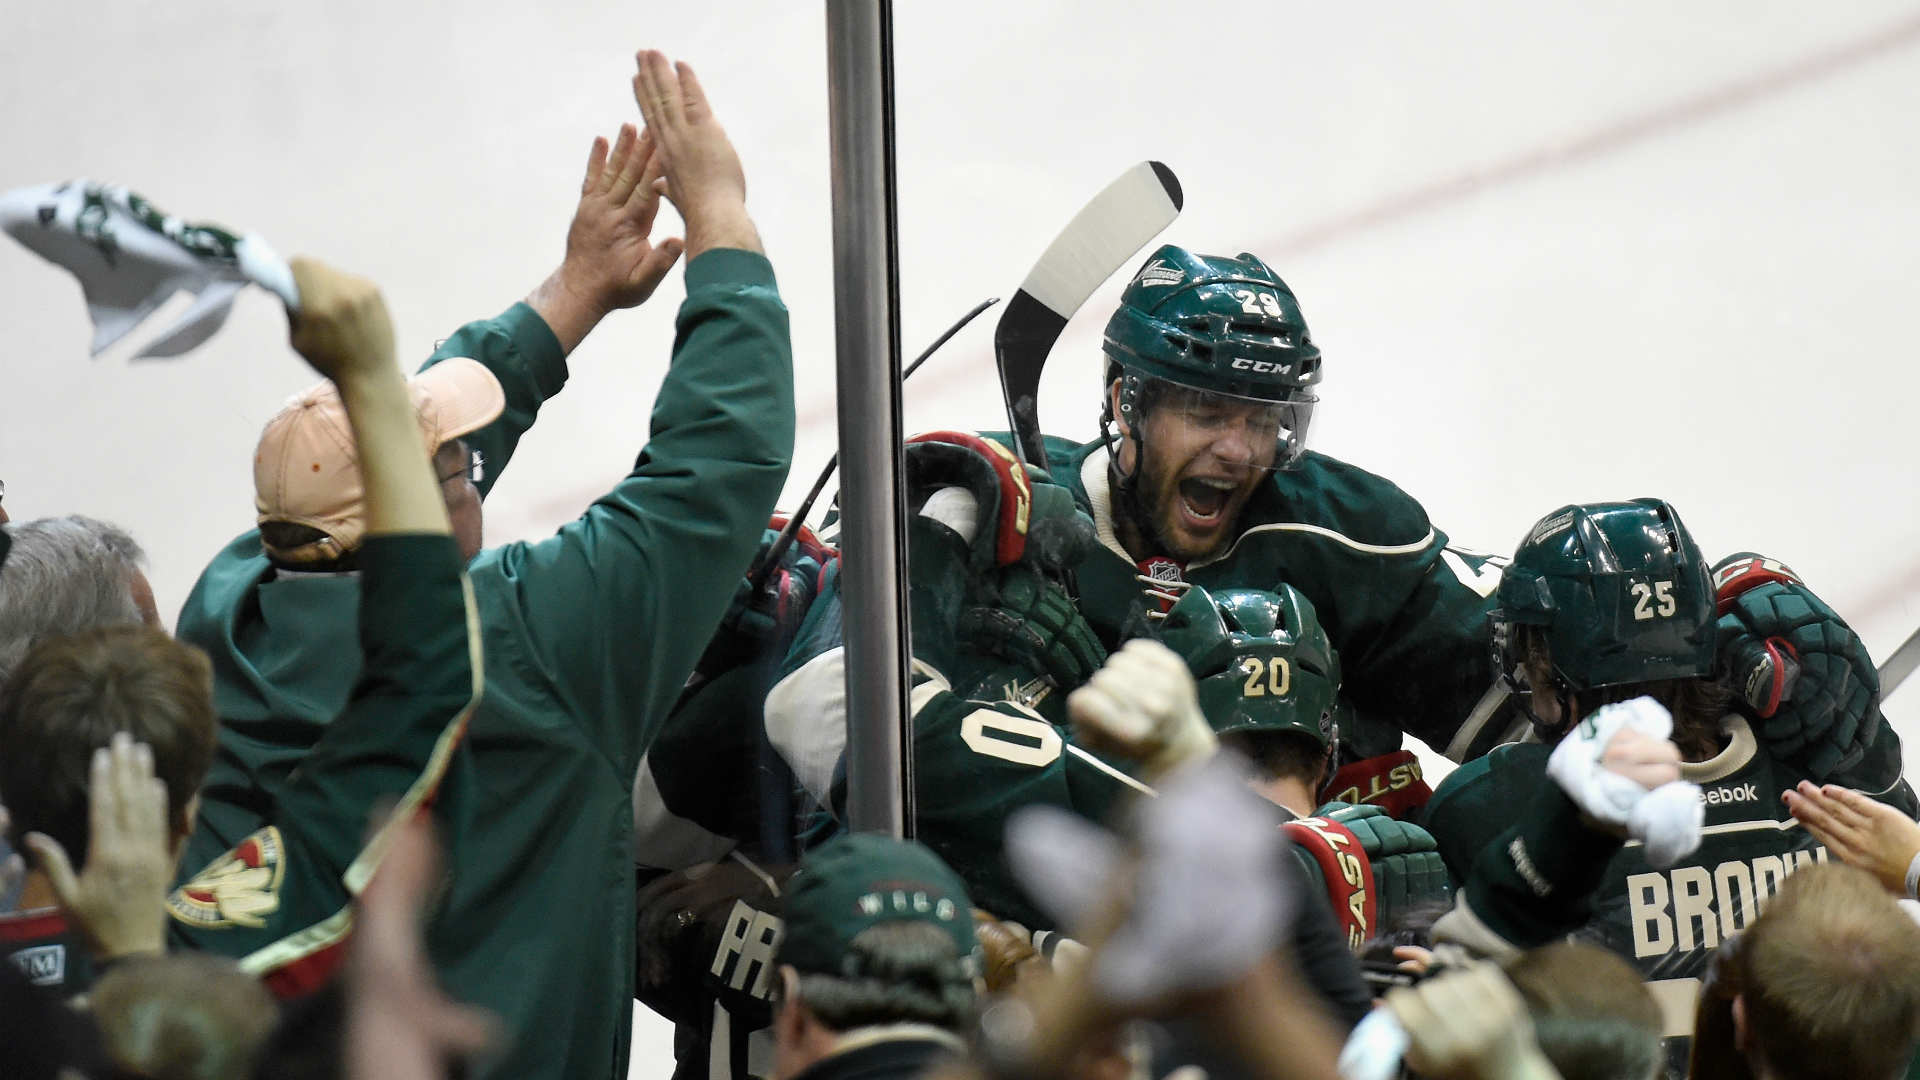 Stanley Cup playoffs roundup: Wild oust Blues; Canadiens end Ottawa's run